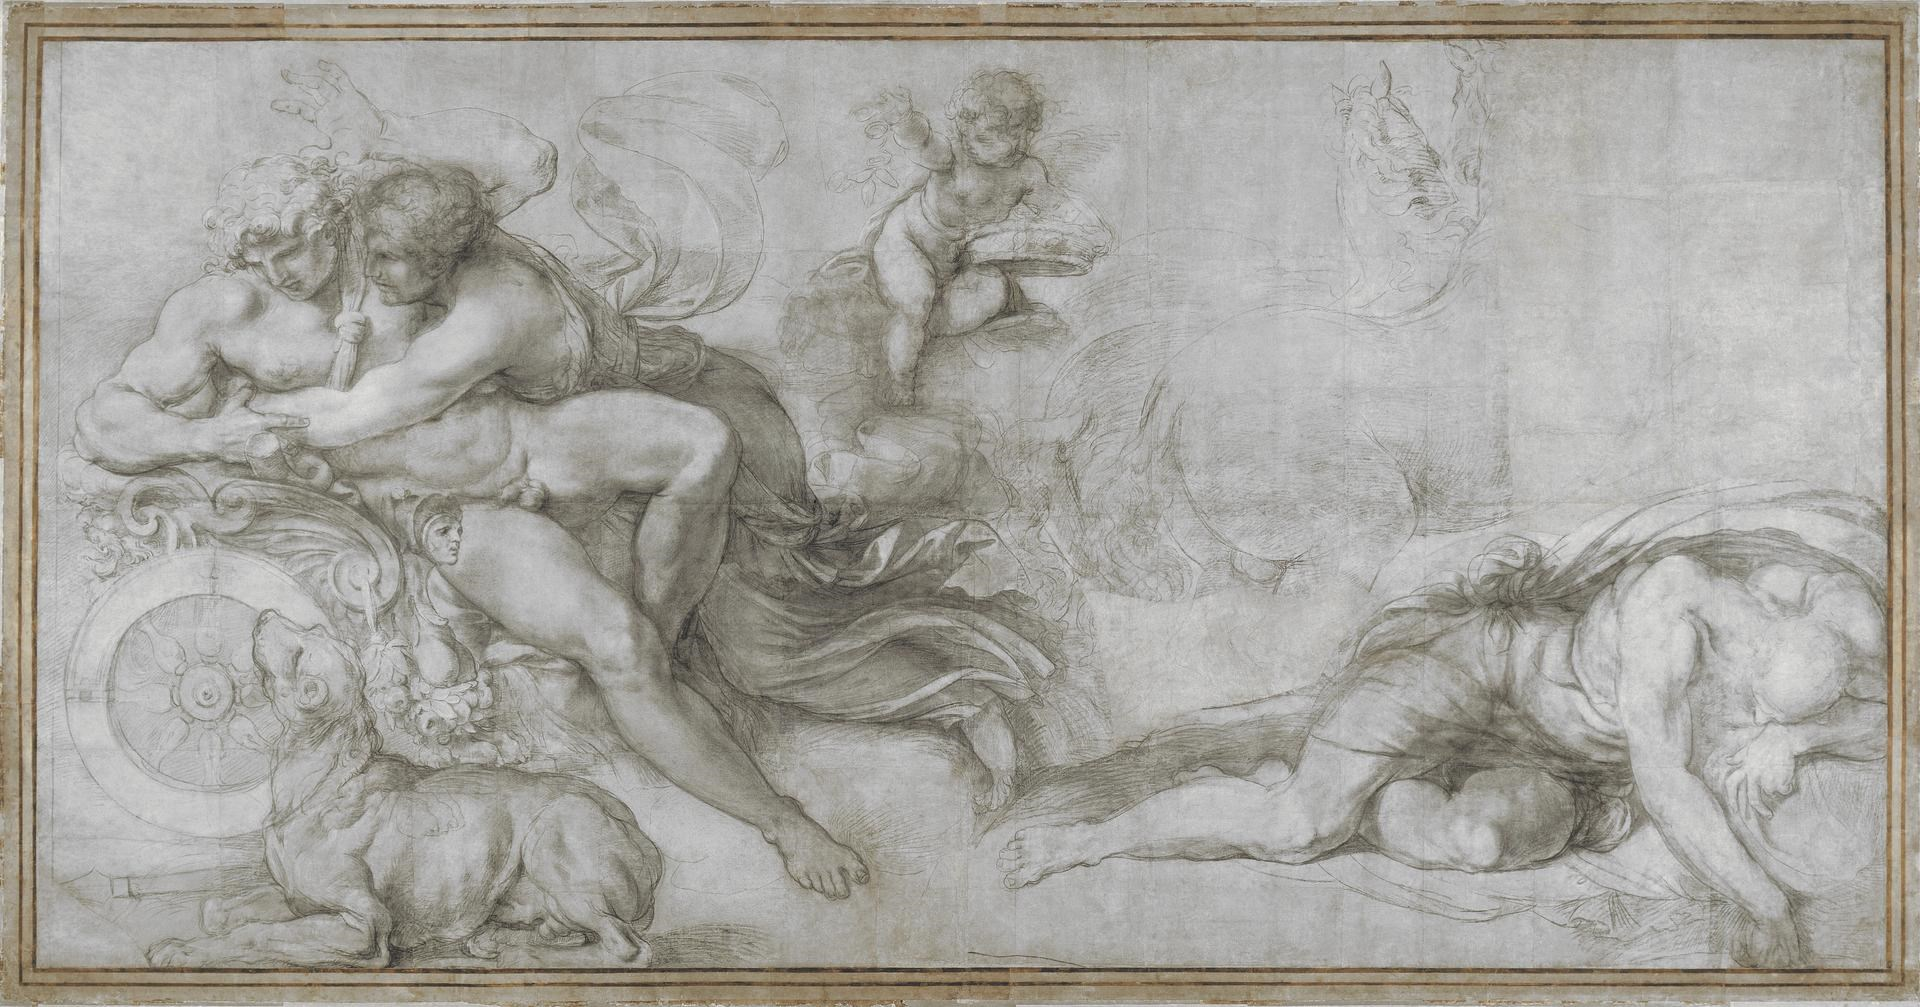 Cephalus carried off by Aurora in her Chariot by Agostino Carracci